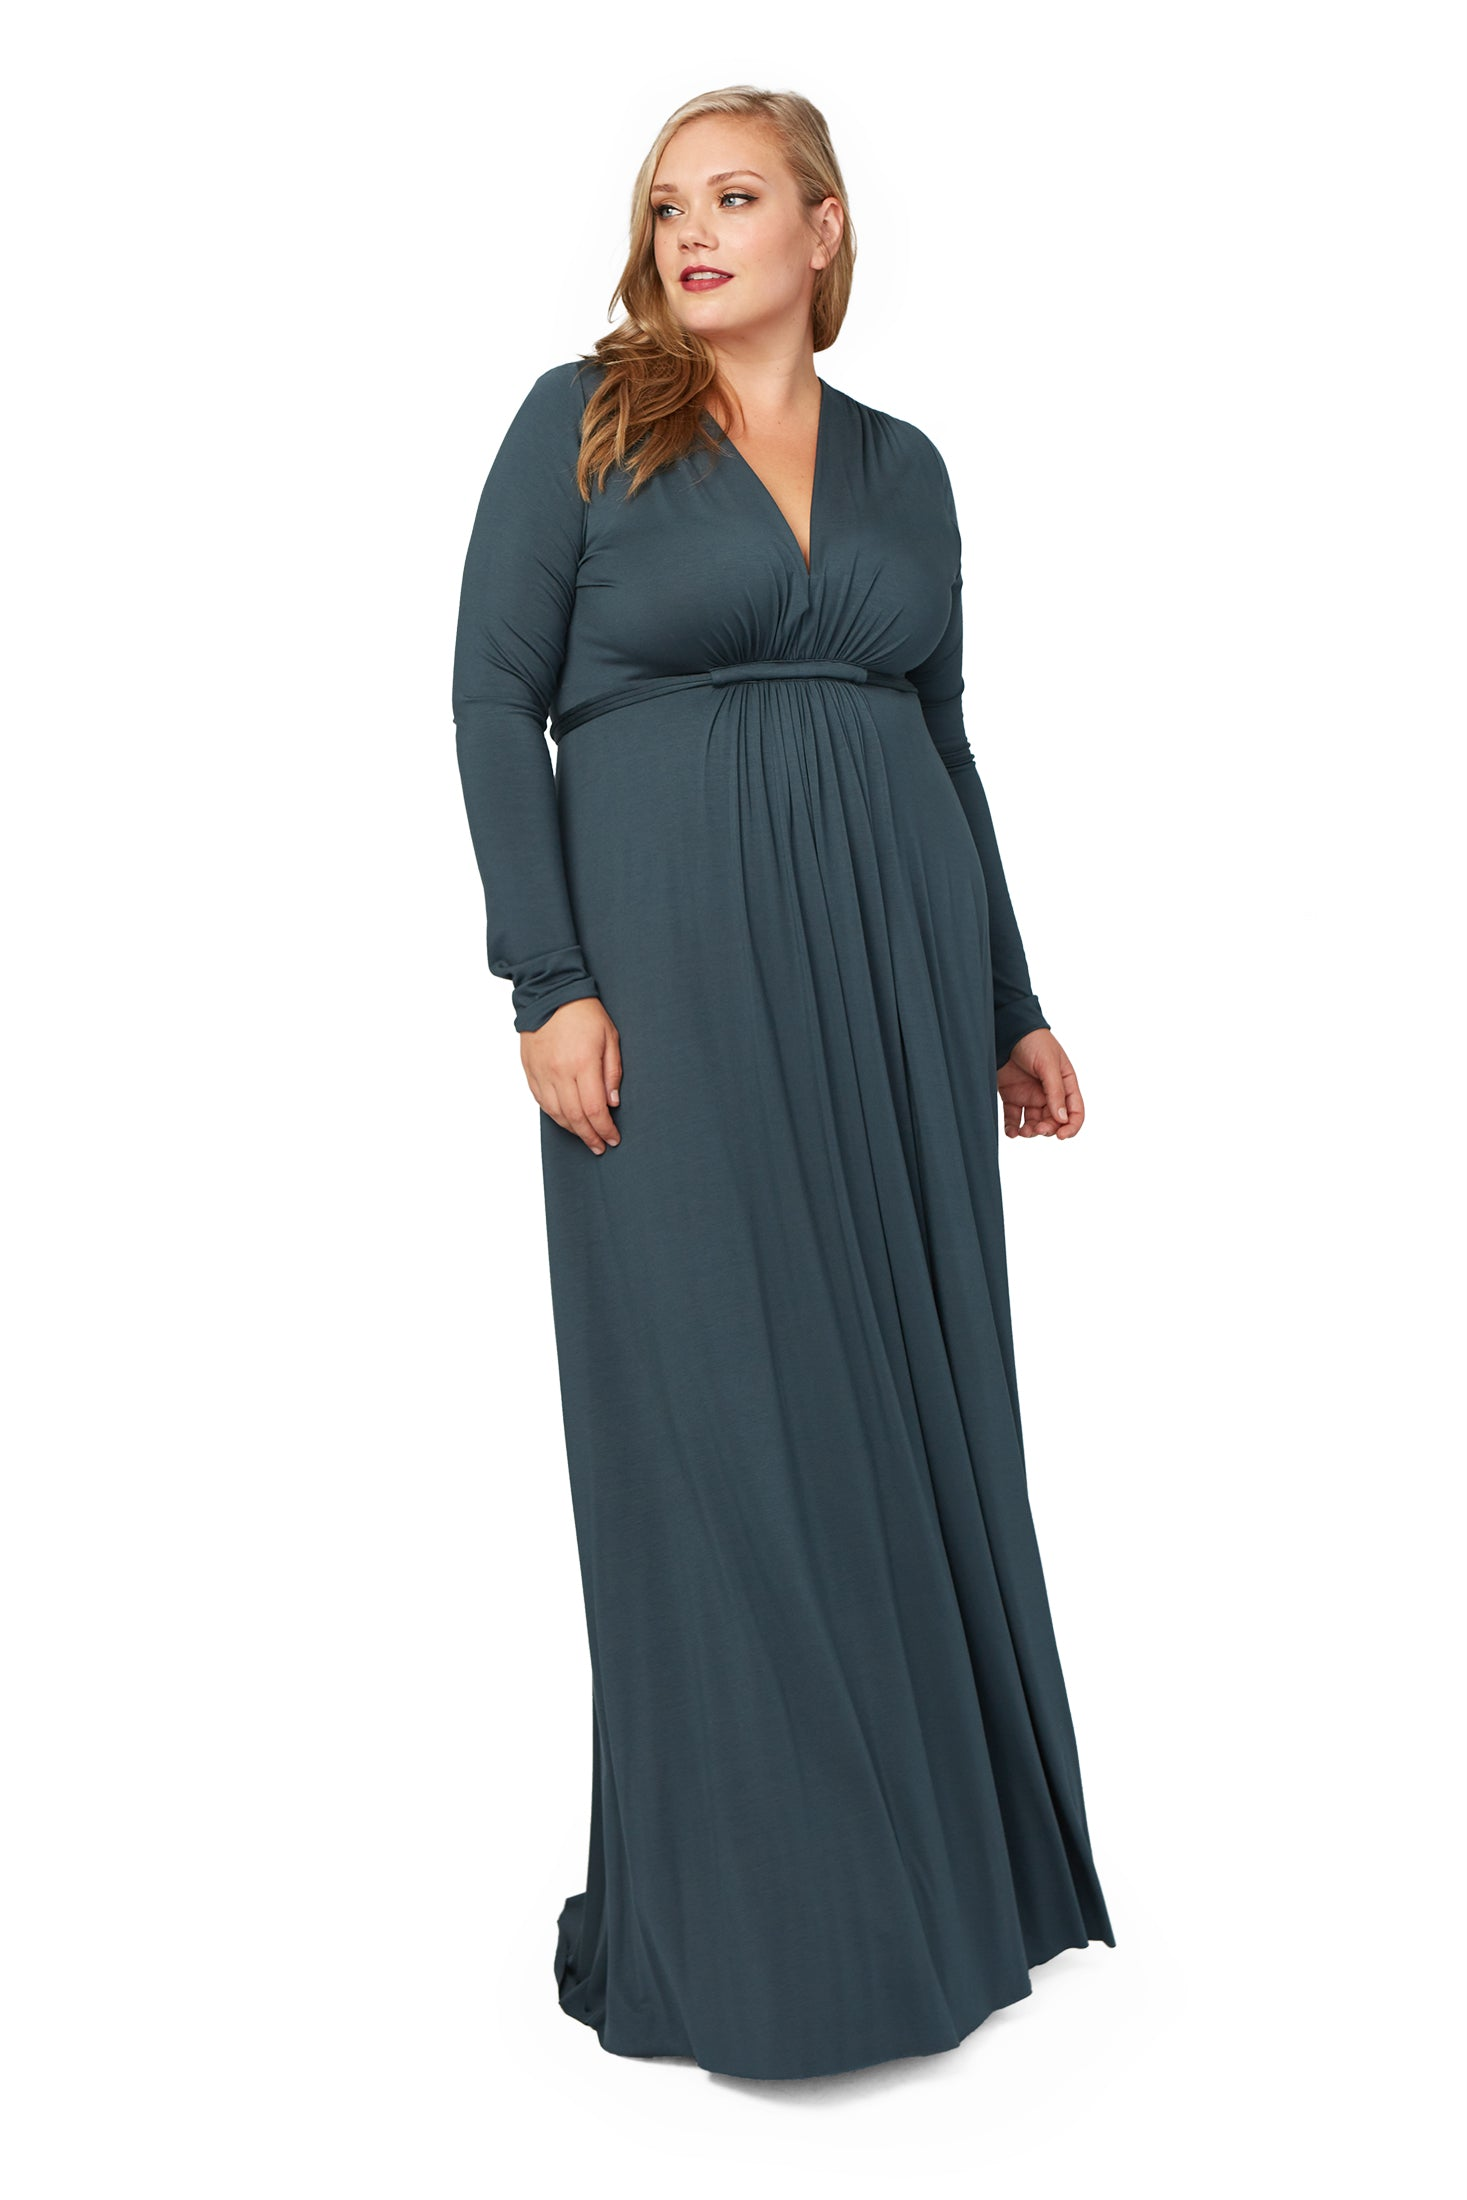 Long Sleeve Full Length Caftan Dress WL - Elm